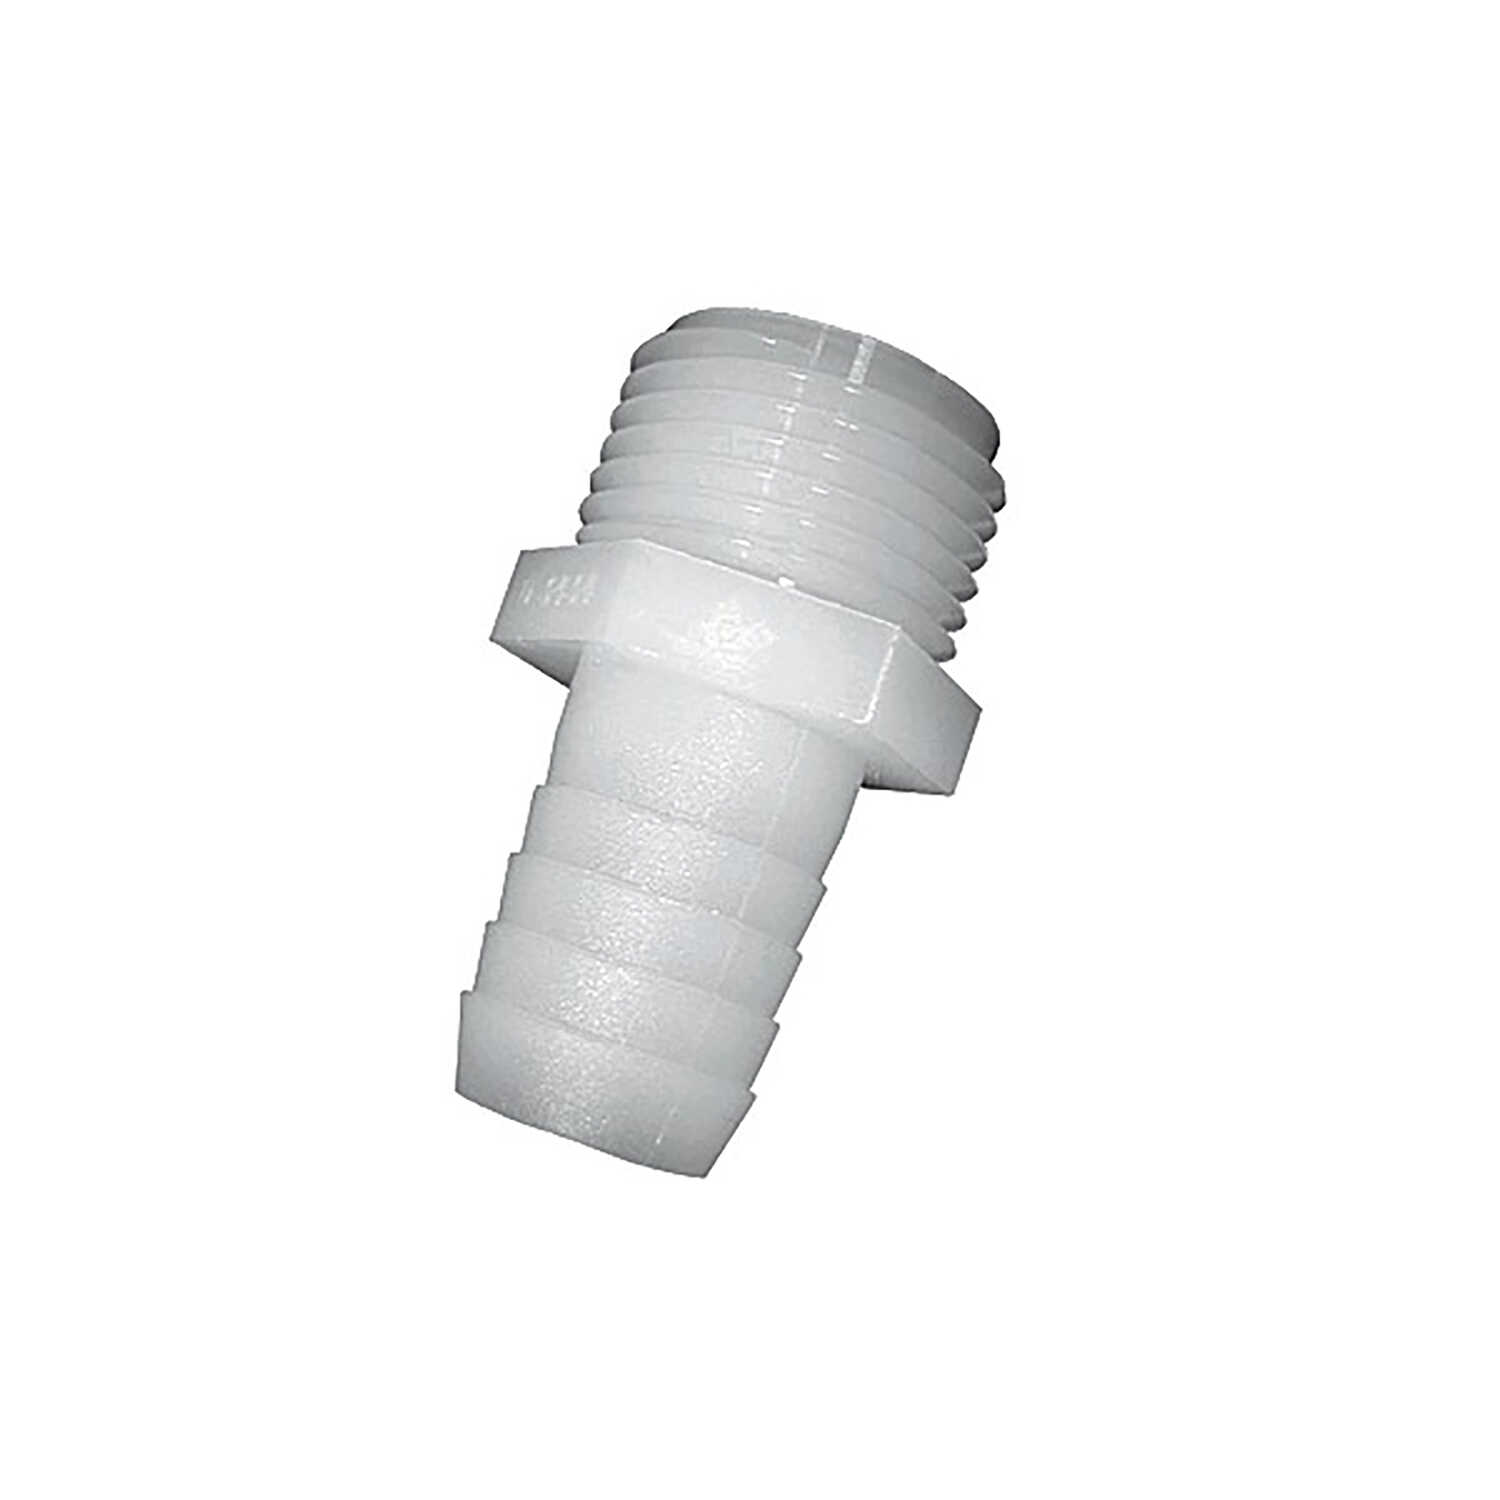 Green Leaf  3/4 in. MGHT   x 1/2 in. Dia. Barb  Nylon  Adapter